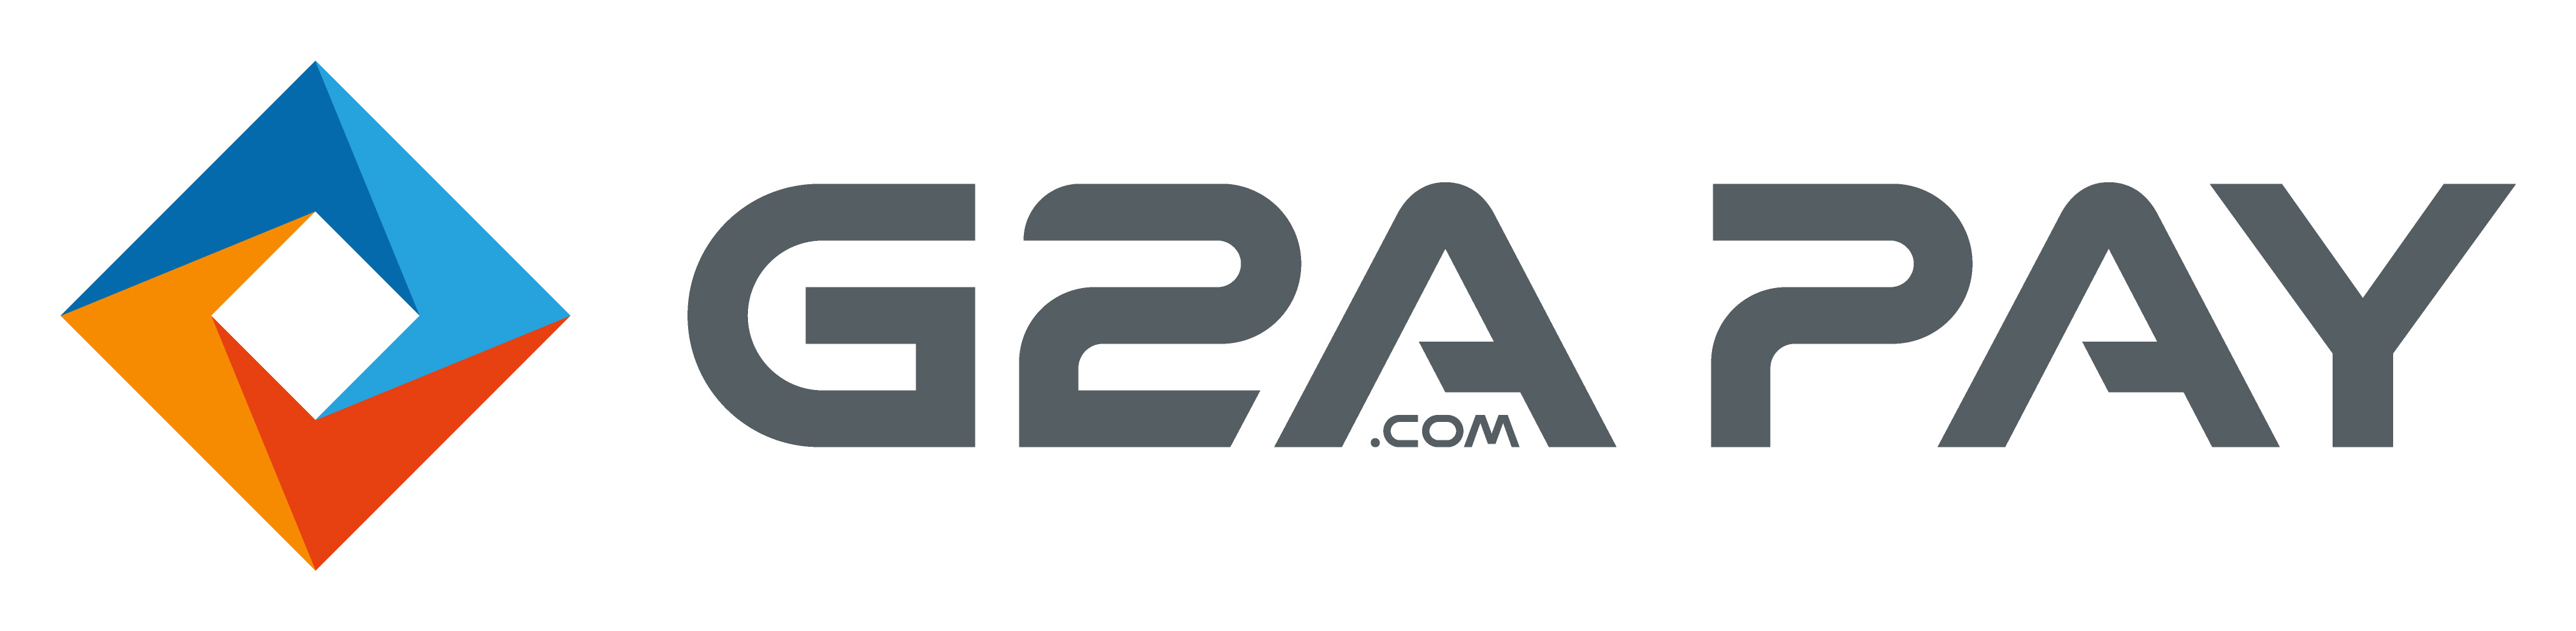 how to pay with debit card on g2a